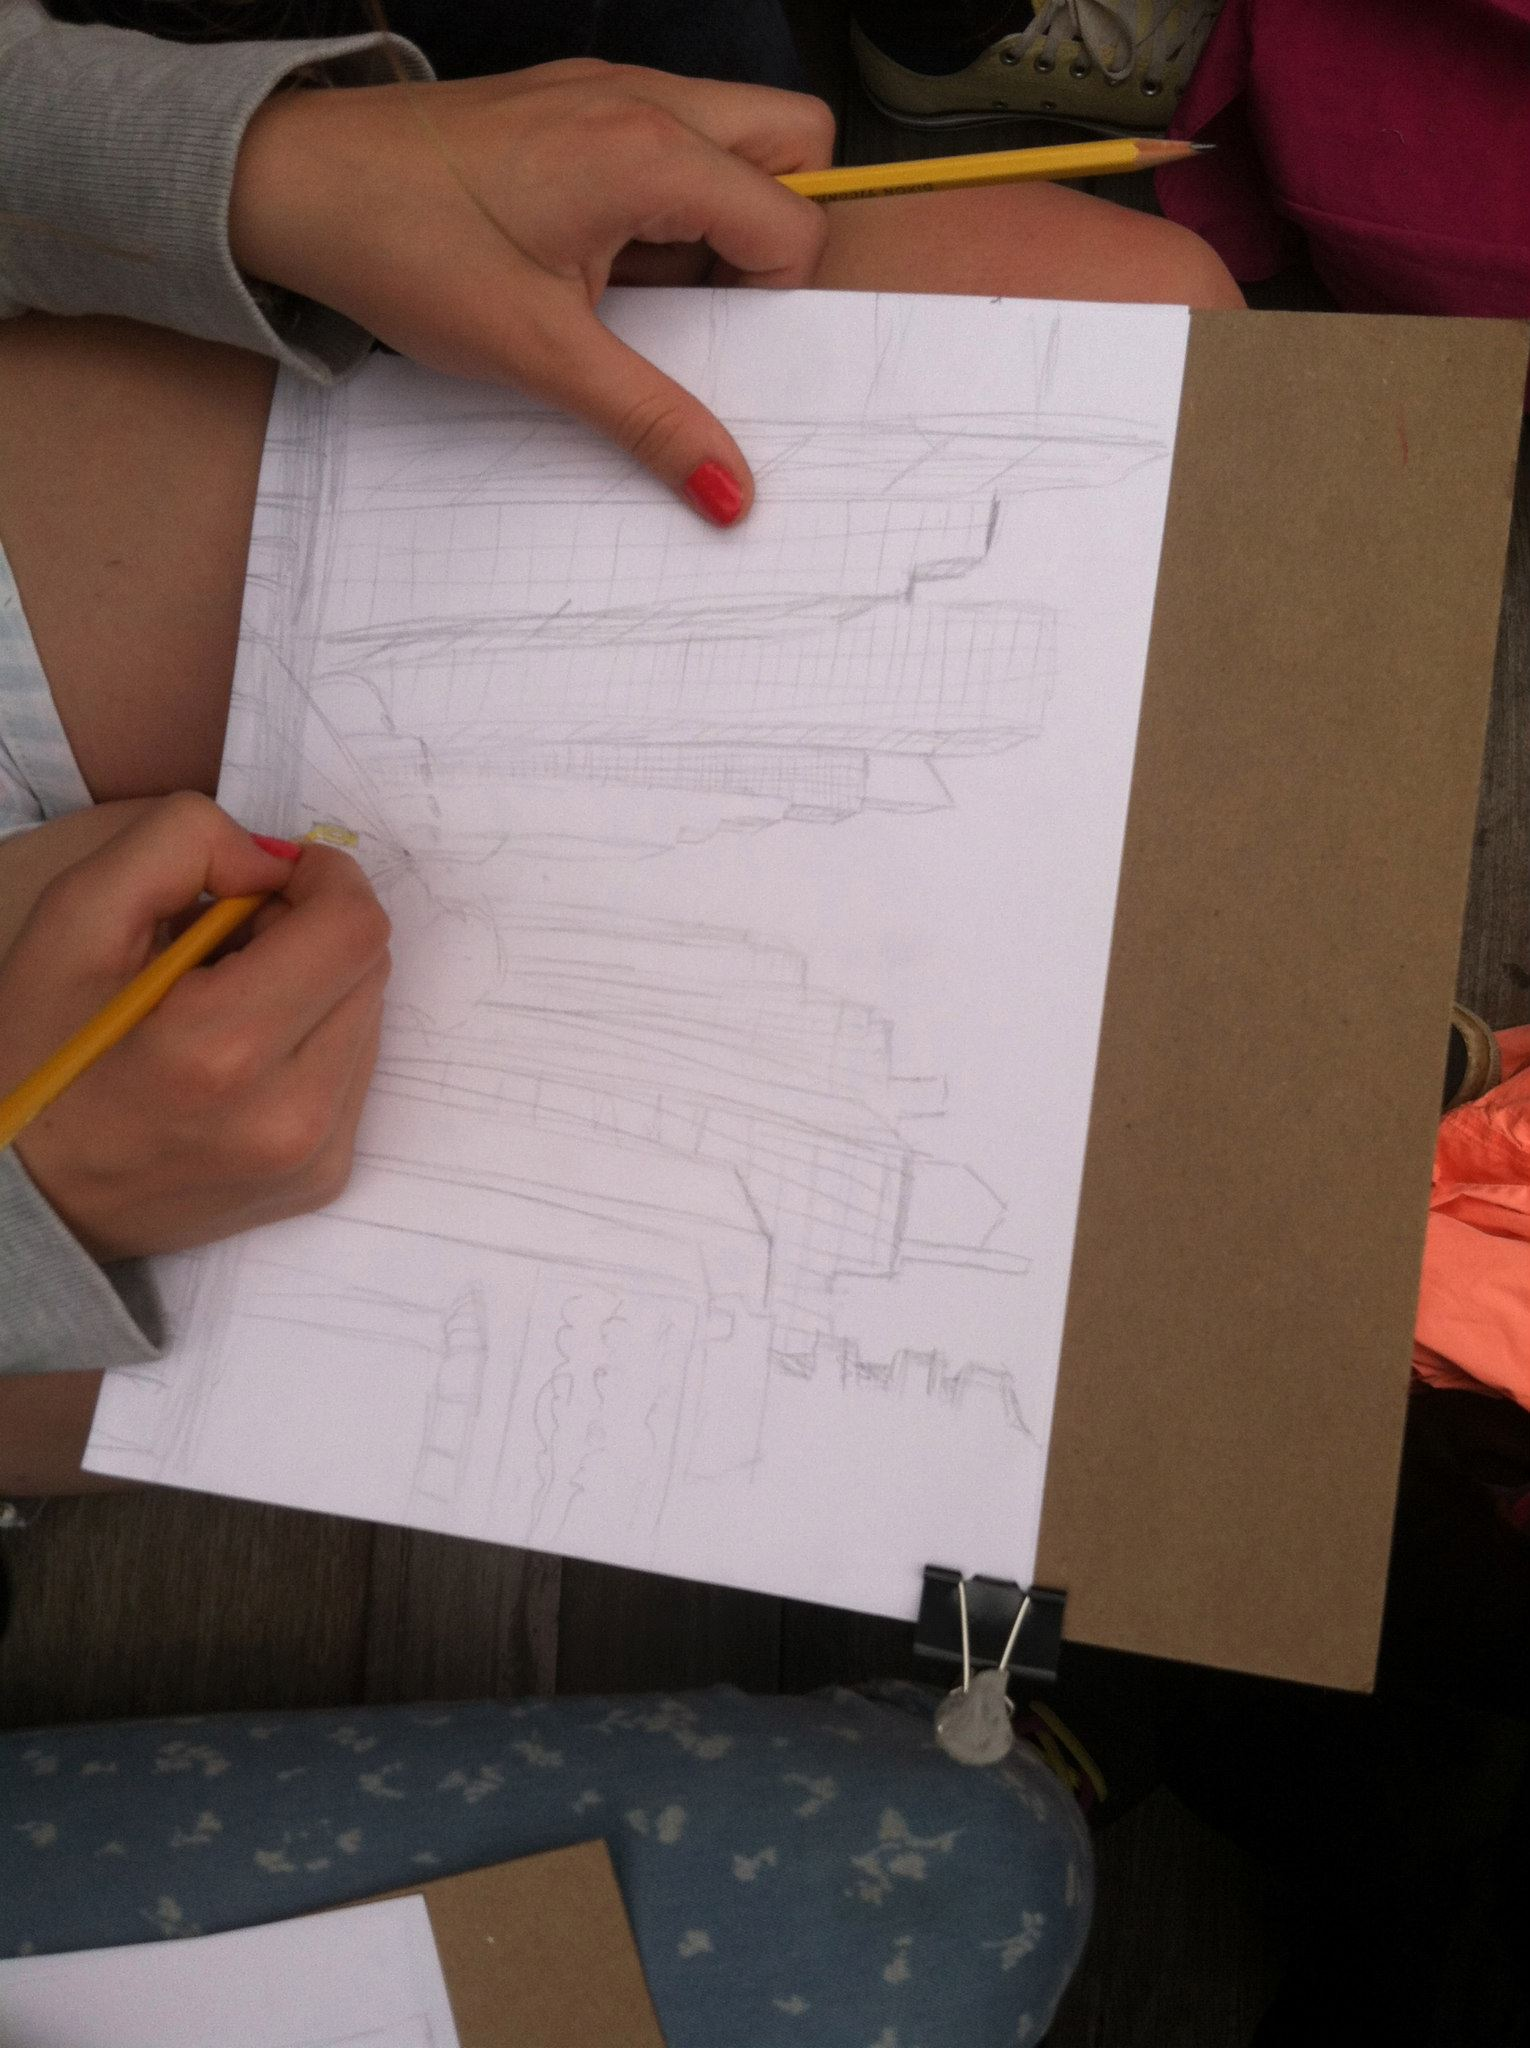 Students sketching outside in the park.